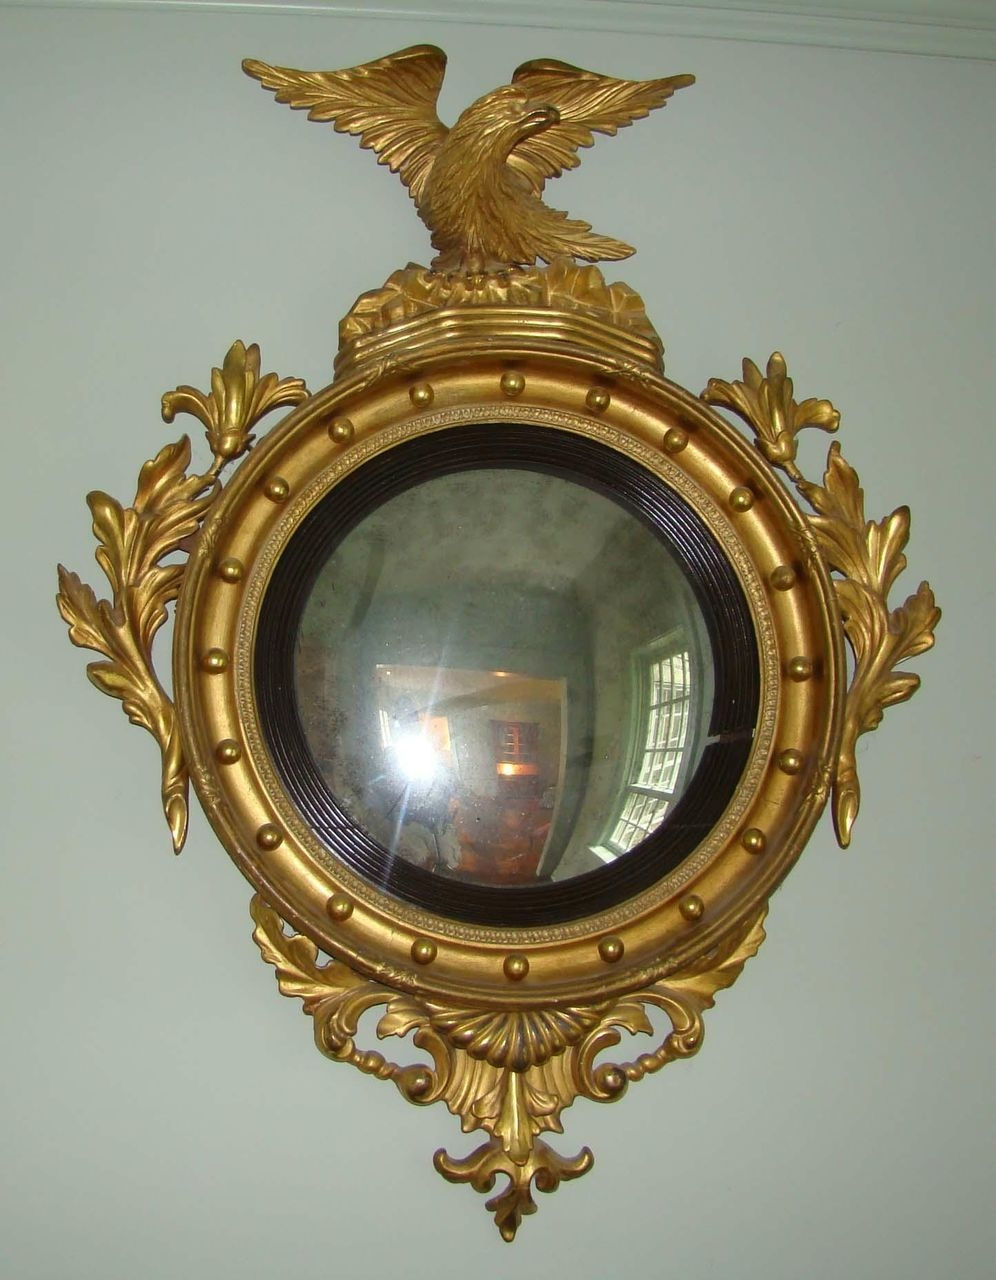 Federal Period Convex Mirror From Wayne Mattox Antiques On Ru Lane Regarding Antique Convex Mirrors For Sale (Image 10 of 15)